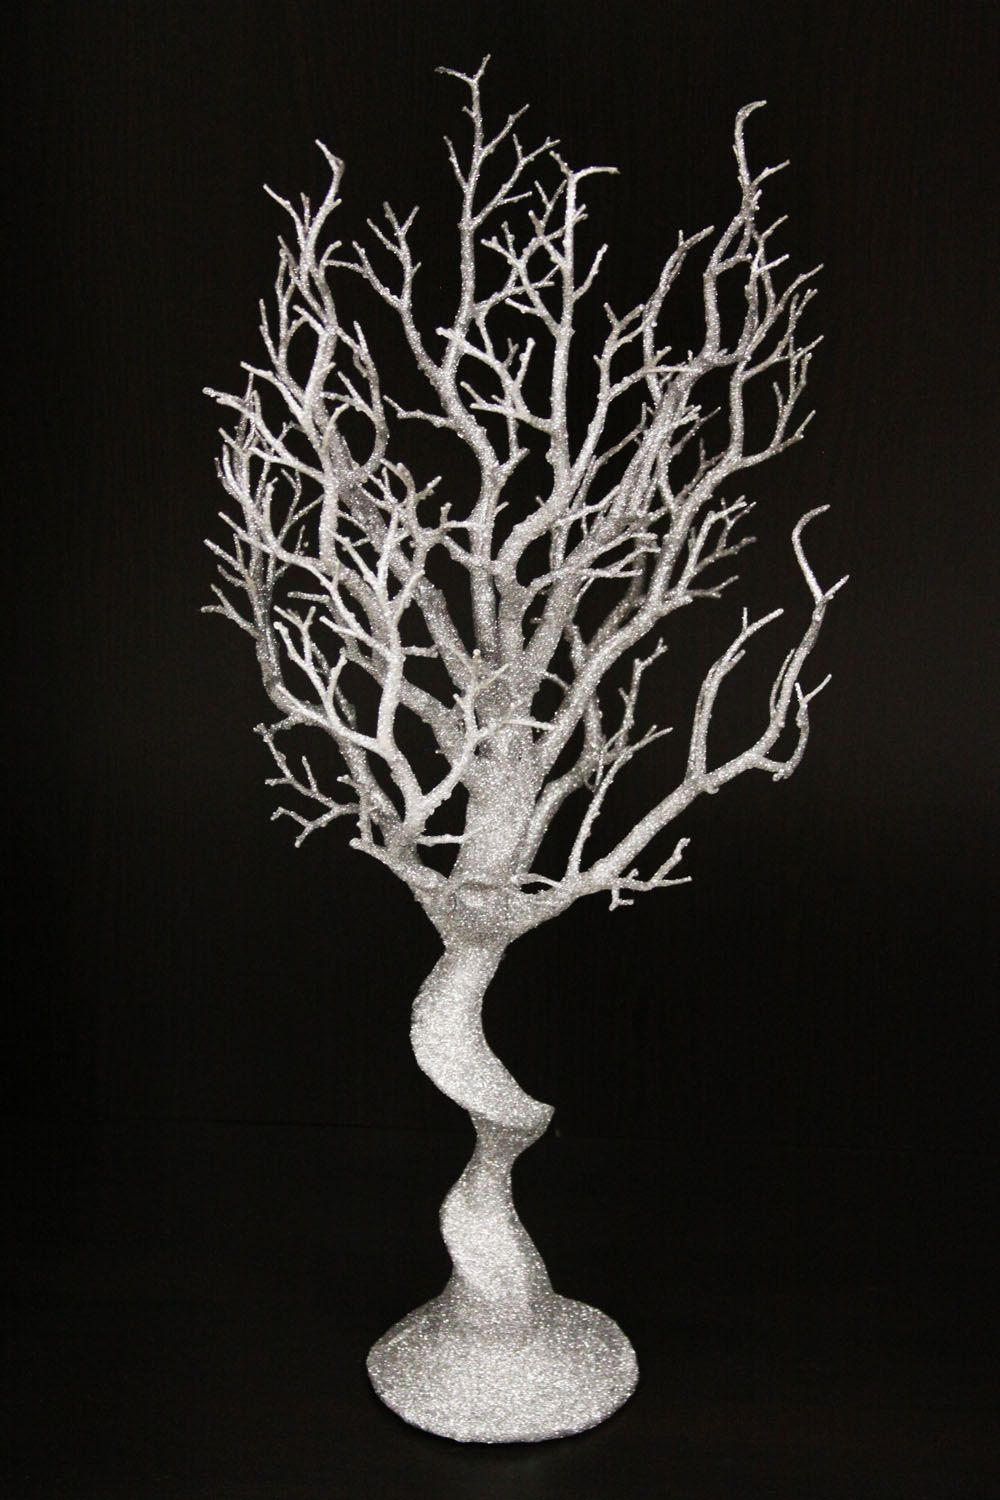 Check Out Our Stunning Selection Of Glitter Manzanita Trees Fantastic For Centerpieces Party Decor